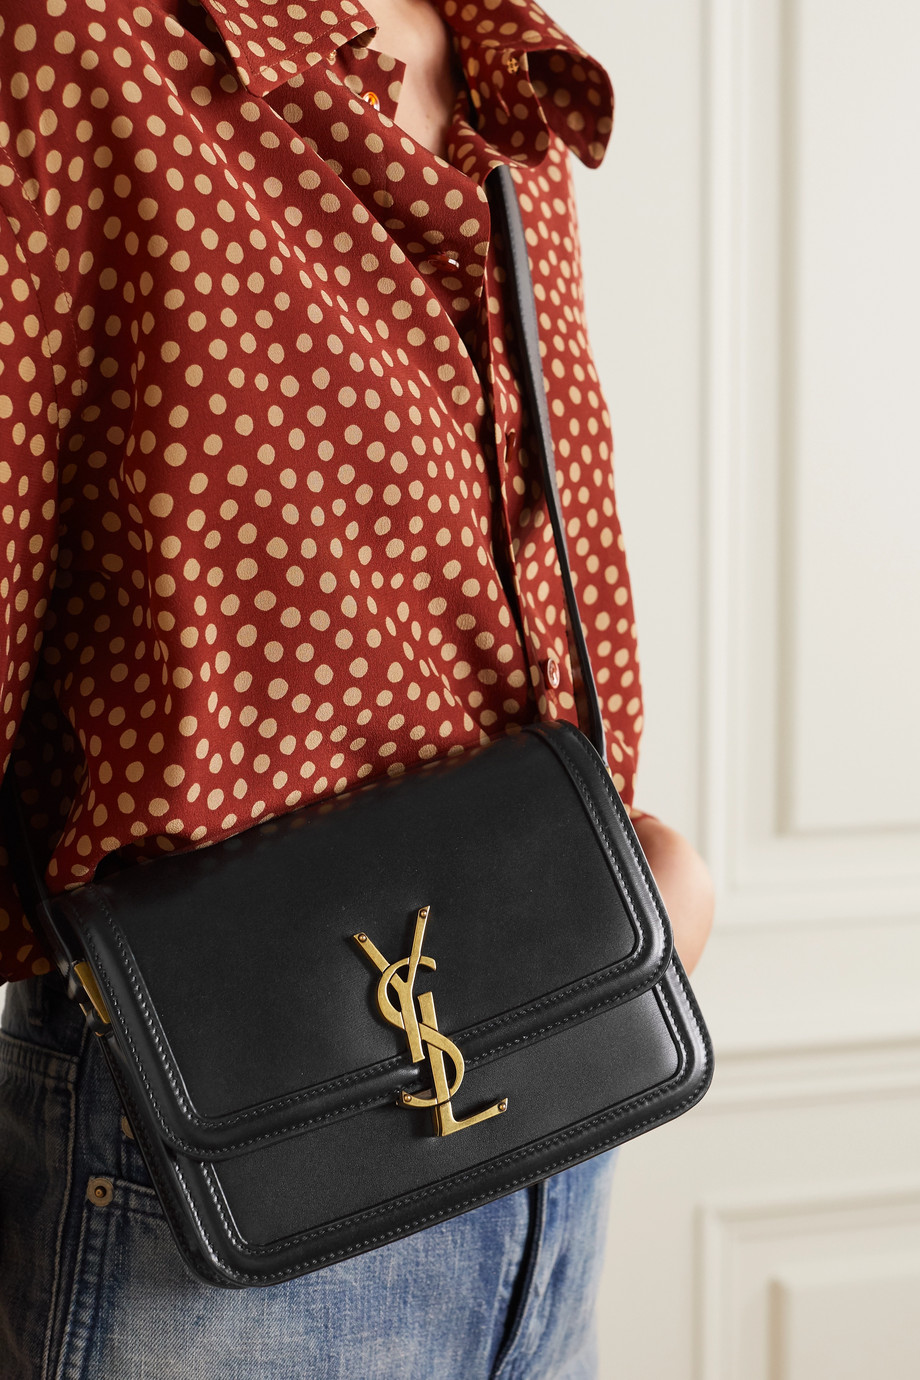 SAINT LAURENT Solferino small leather shoulder bag